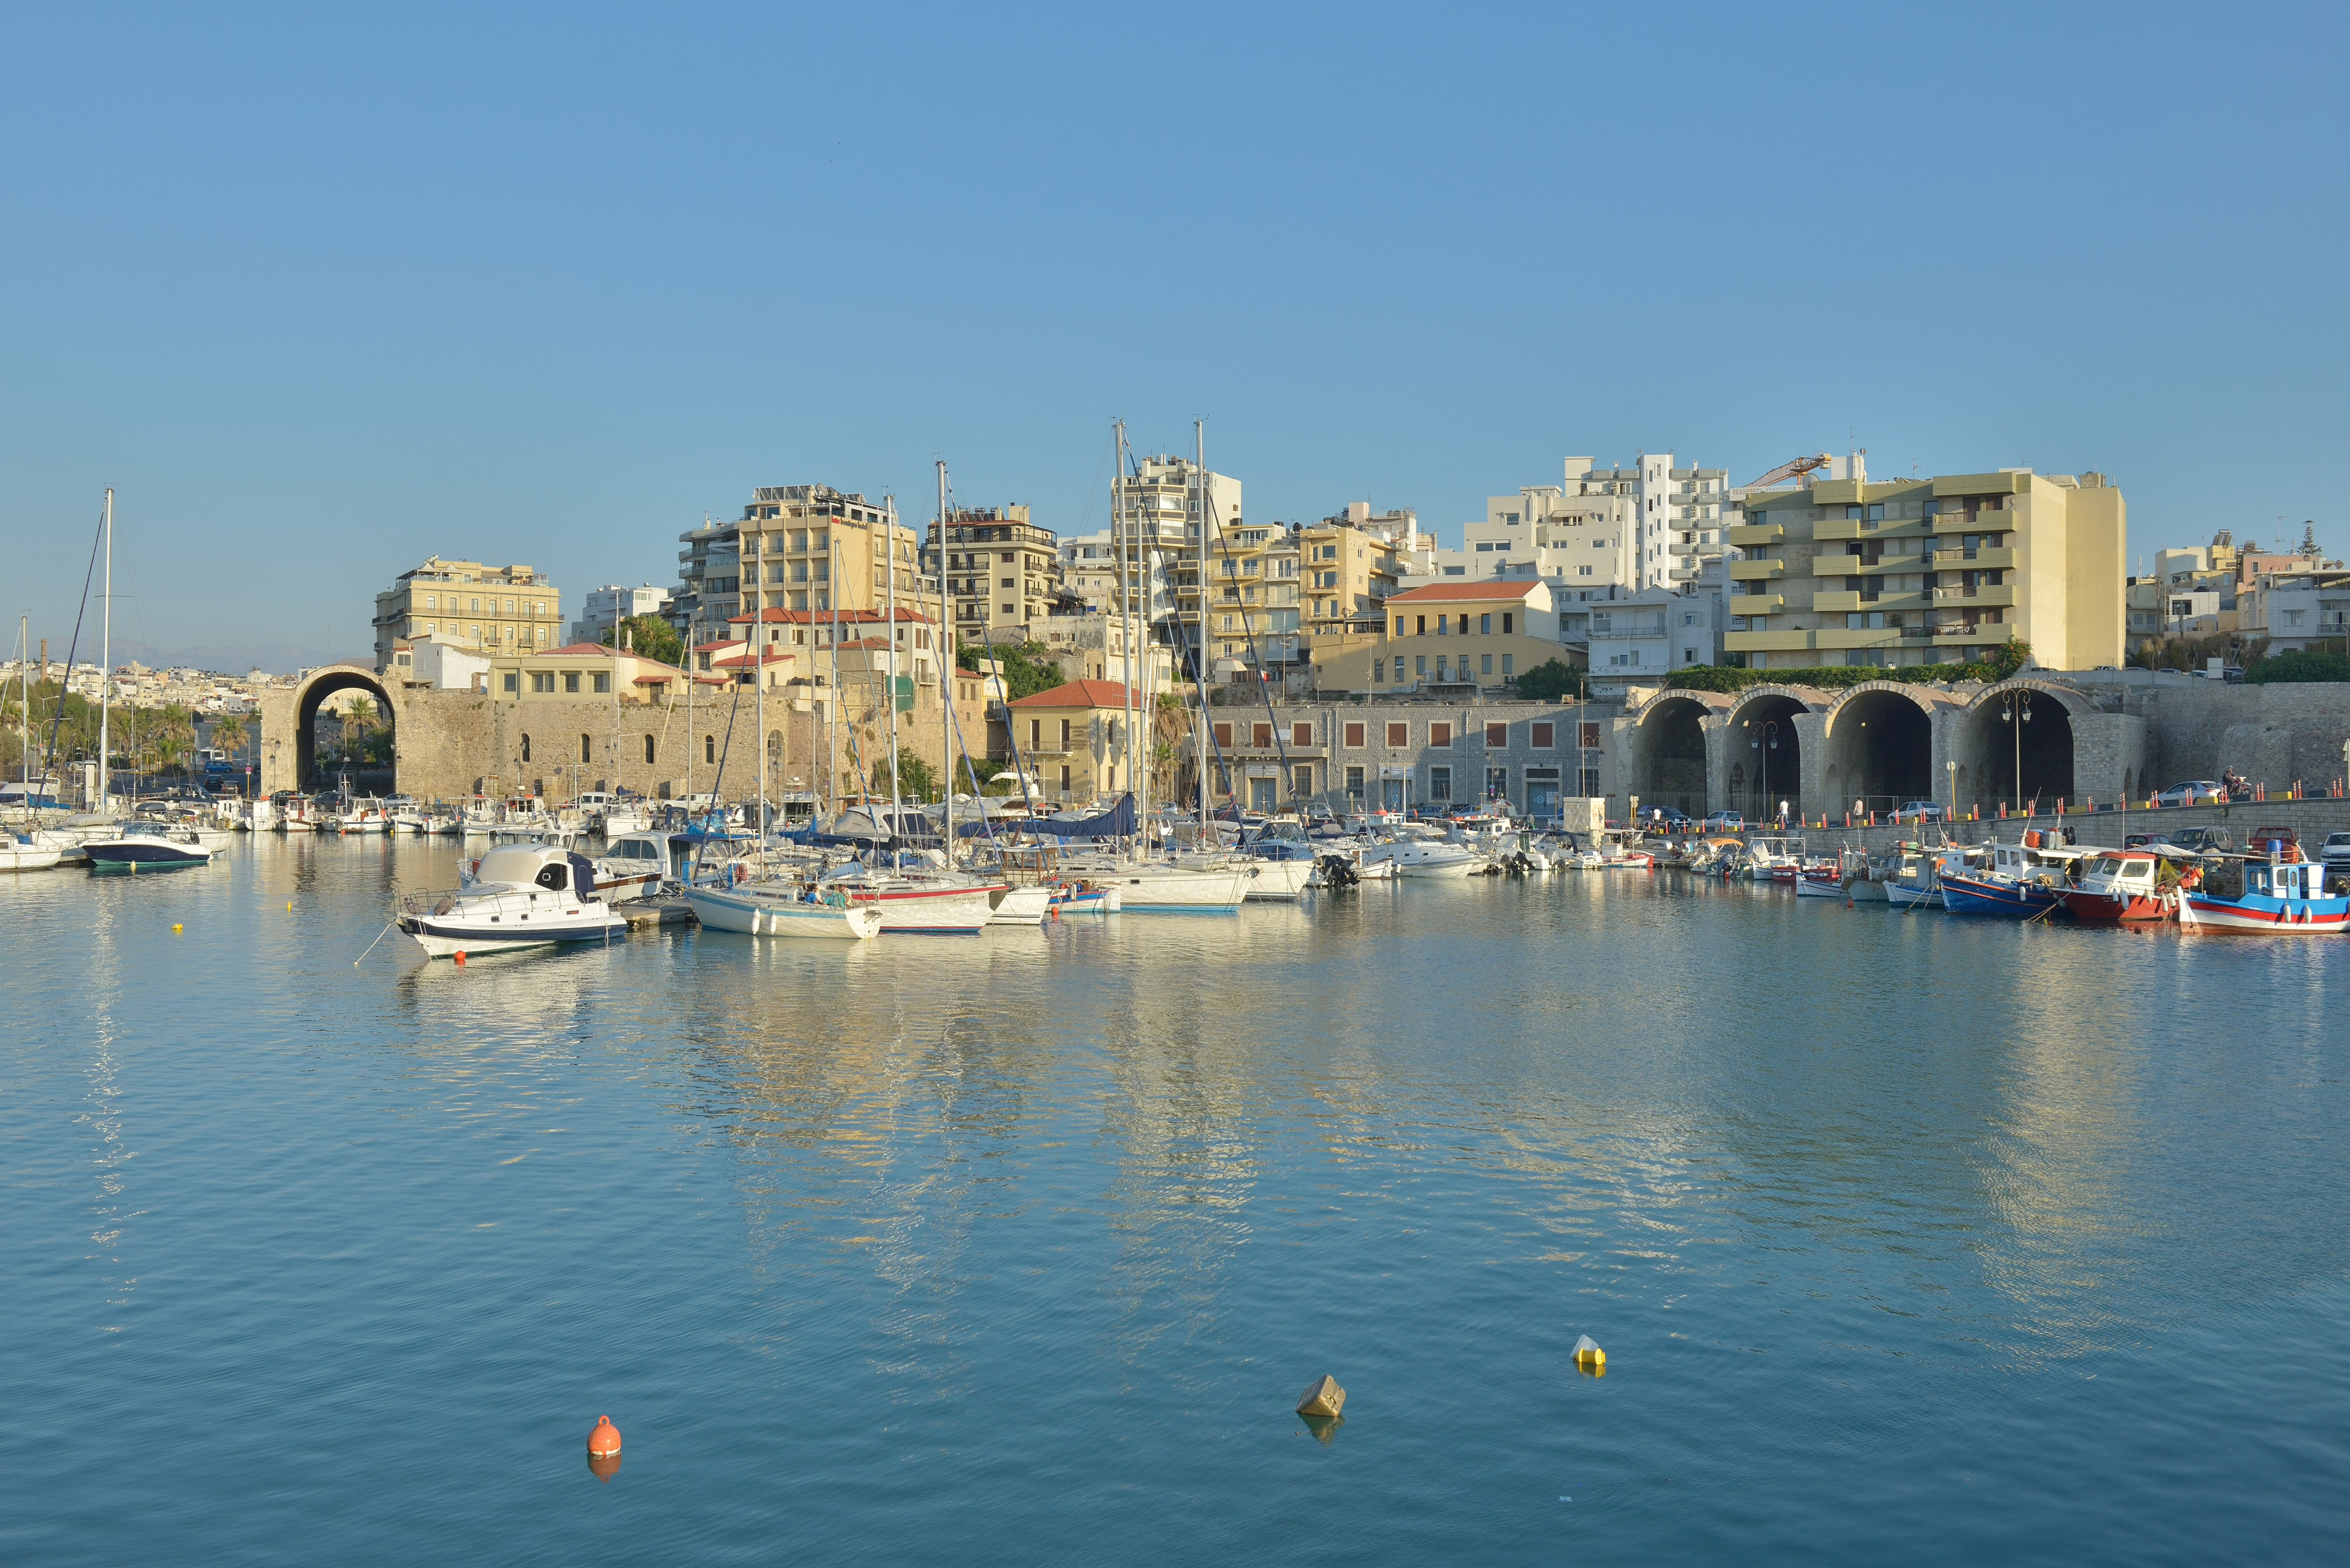 Venetian Arsenals in Heraklion Crete